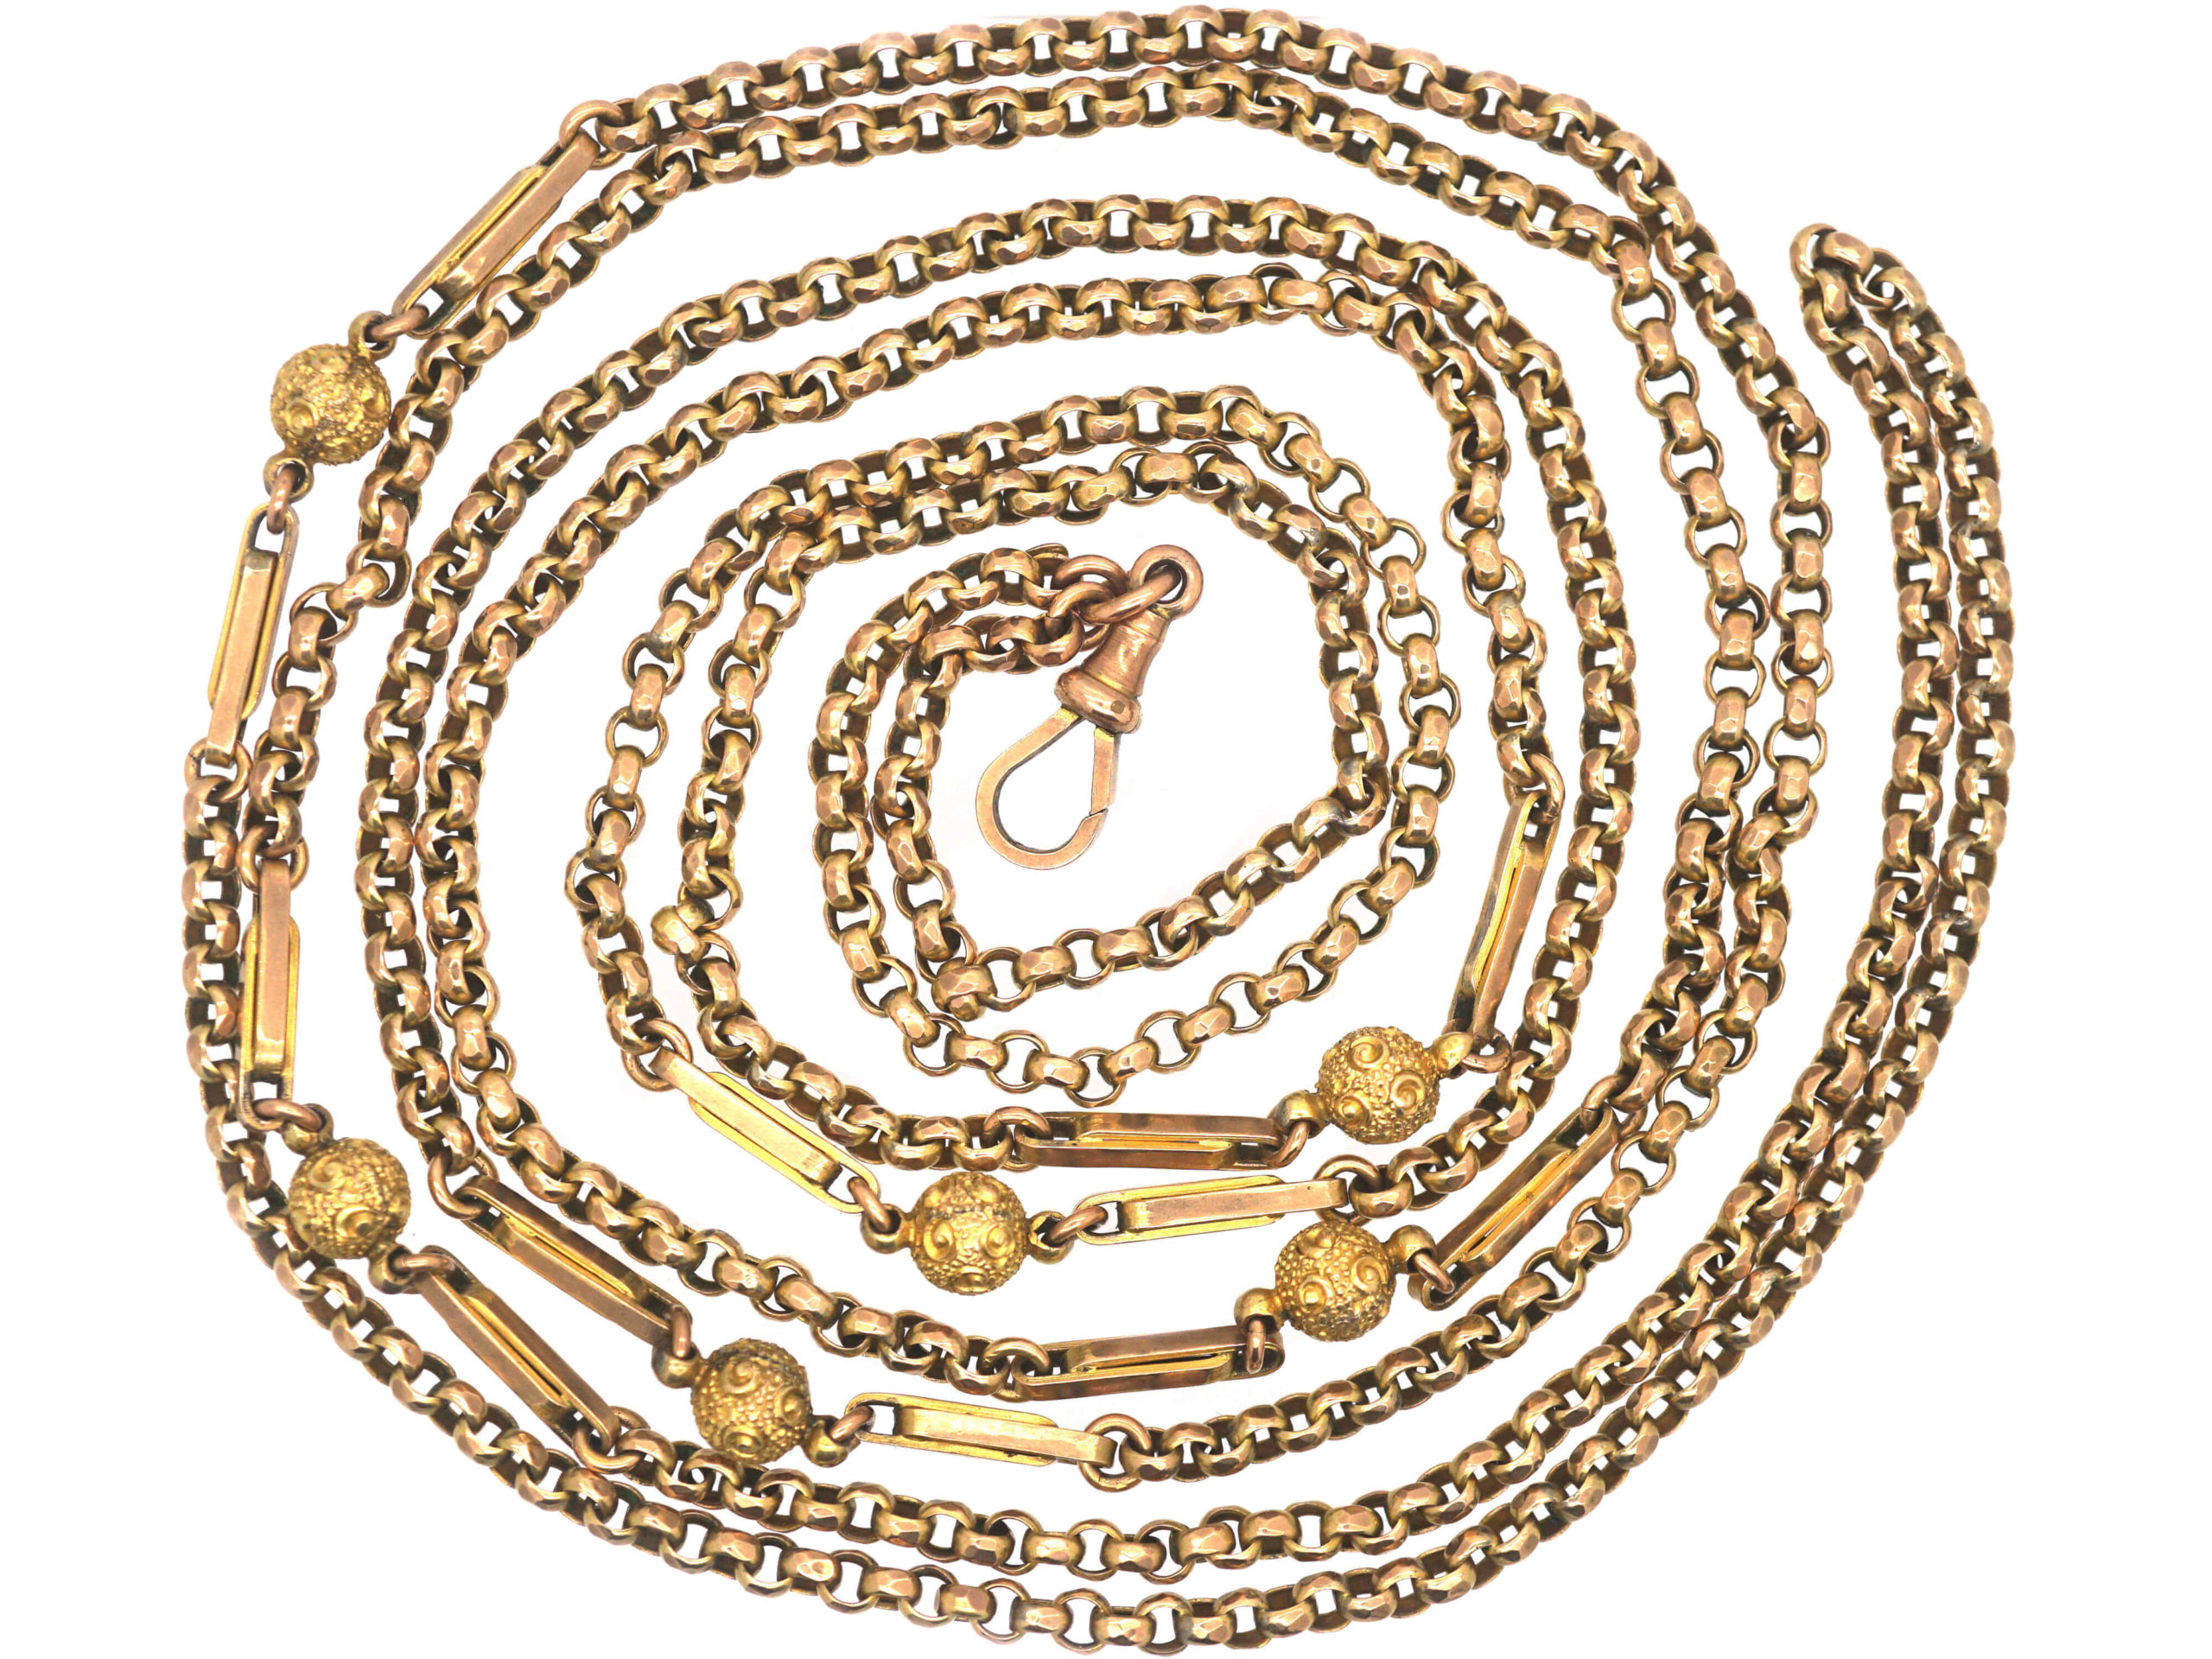 Victorian 9ct Gold Ornate Long Guard Chain